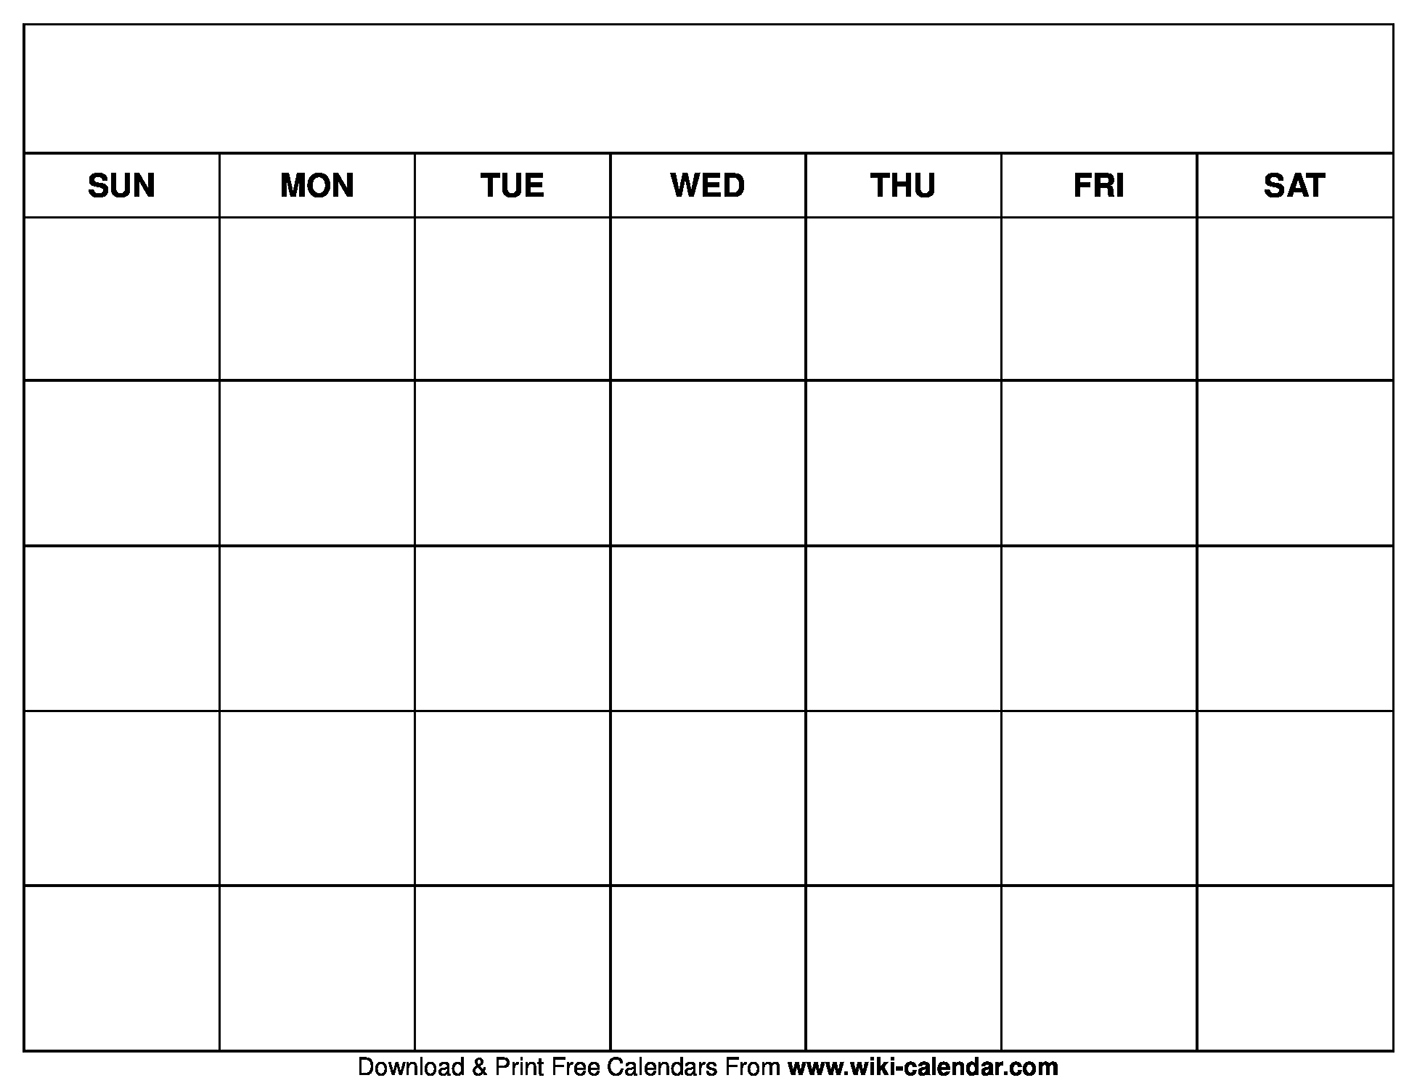 Blank Calendar With Only Weekdays | Template Calendar Printable regarding Blank Calendar With Only Weekdays